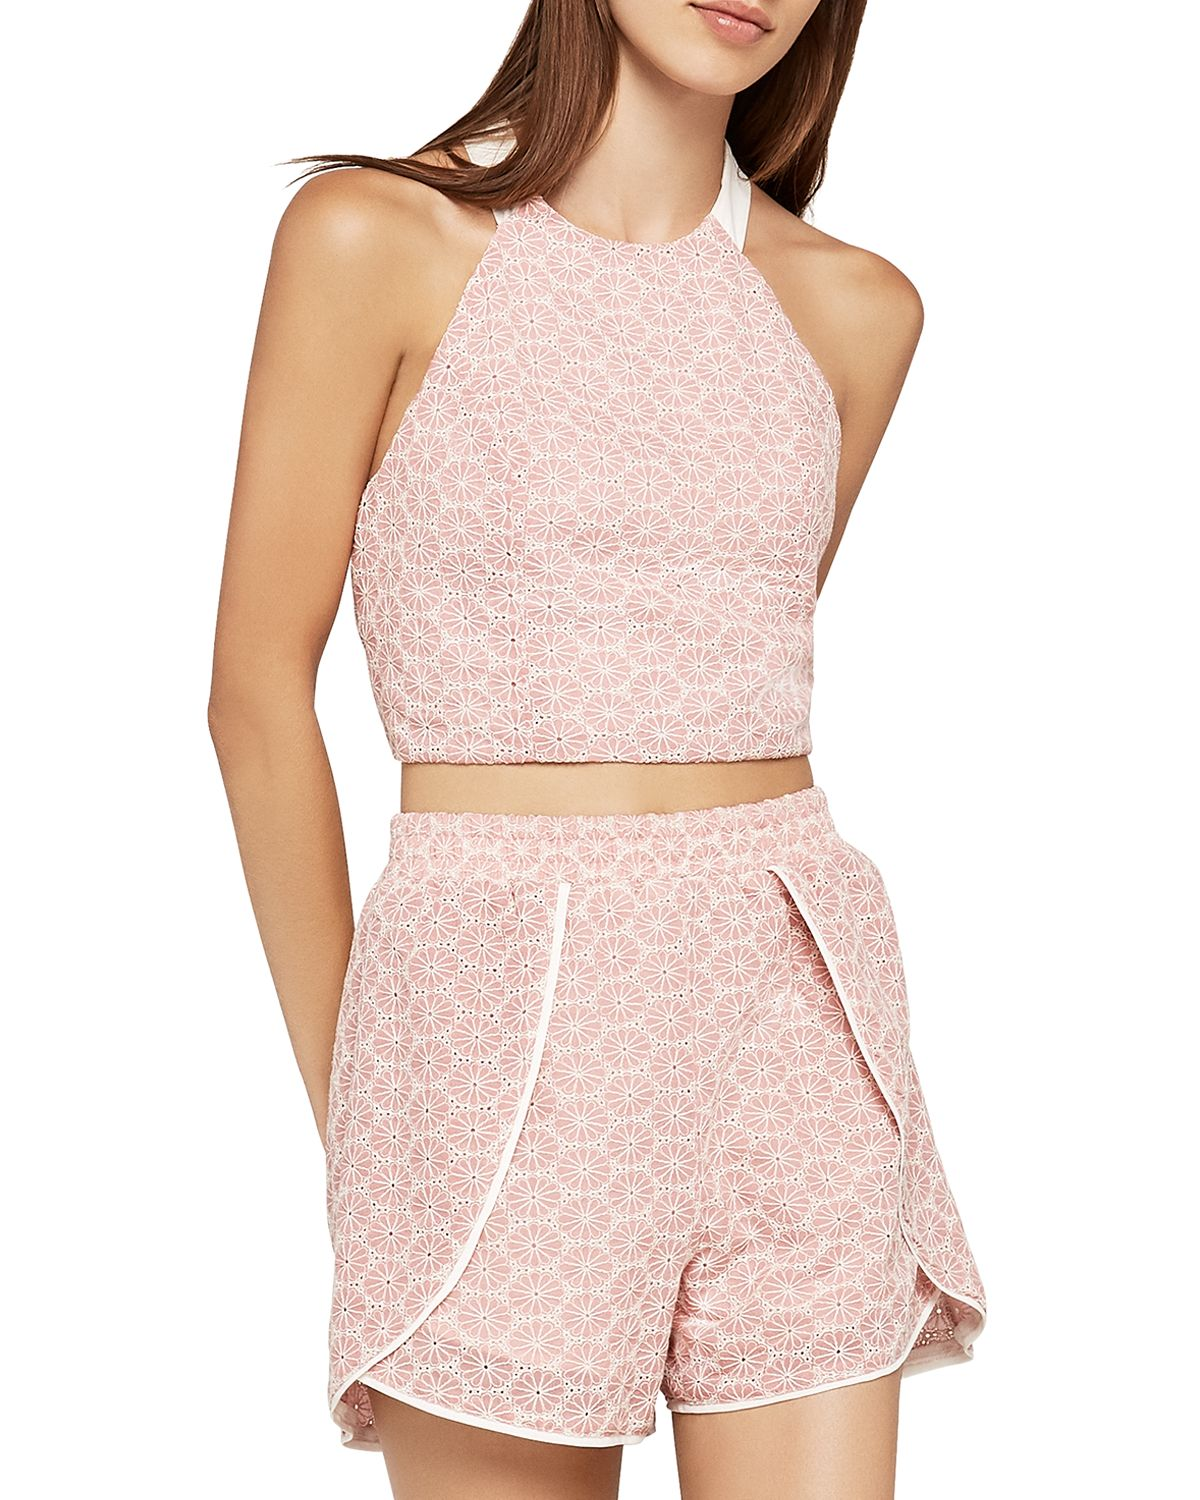 Daisy Eyelet Cropped Top by Bcb Generation